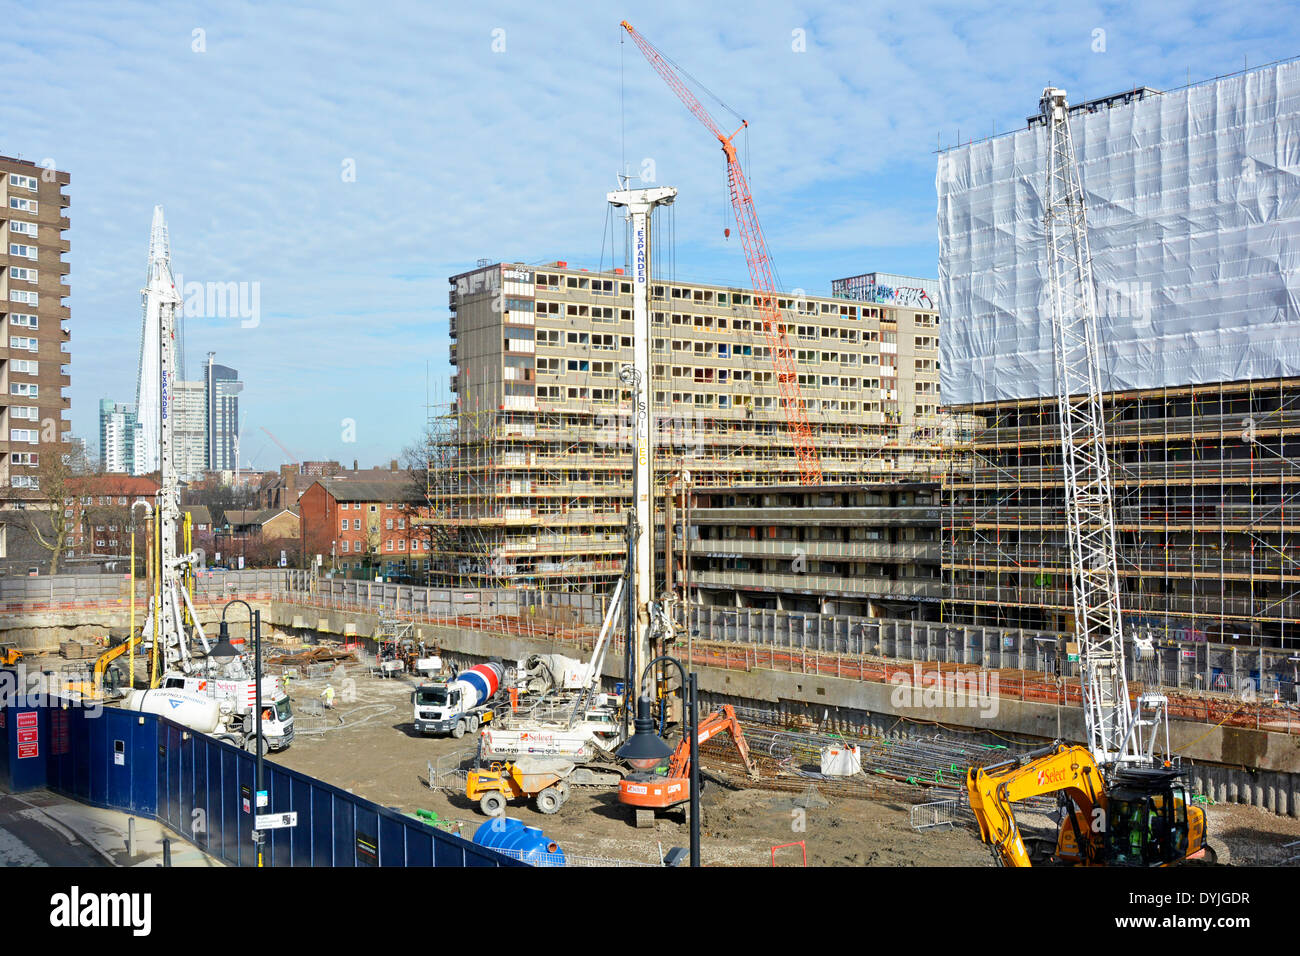 Regeneration work started on part of the site of old Heygate Estate with remaining blocks beyond being prepared for demolition - Stock Image